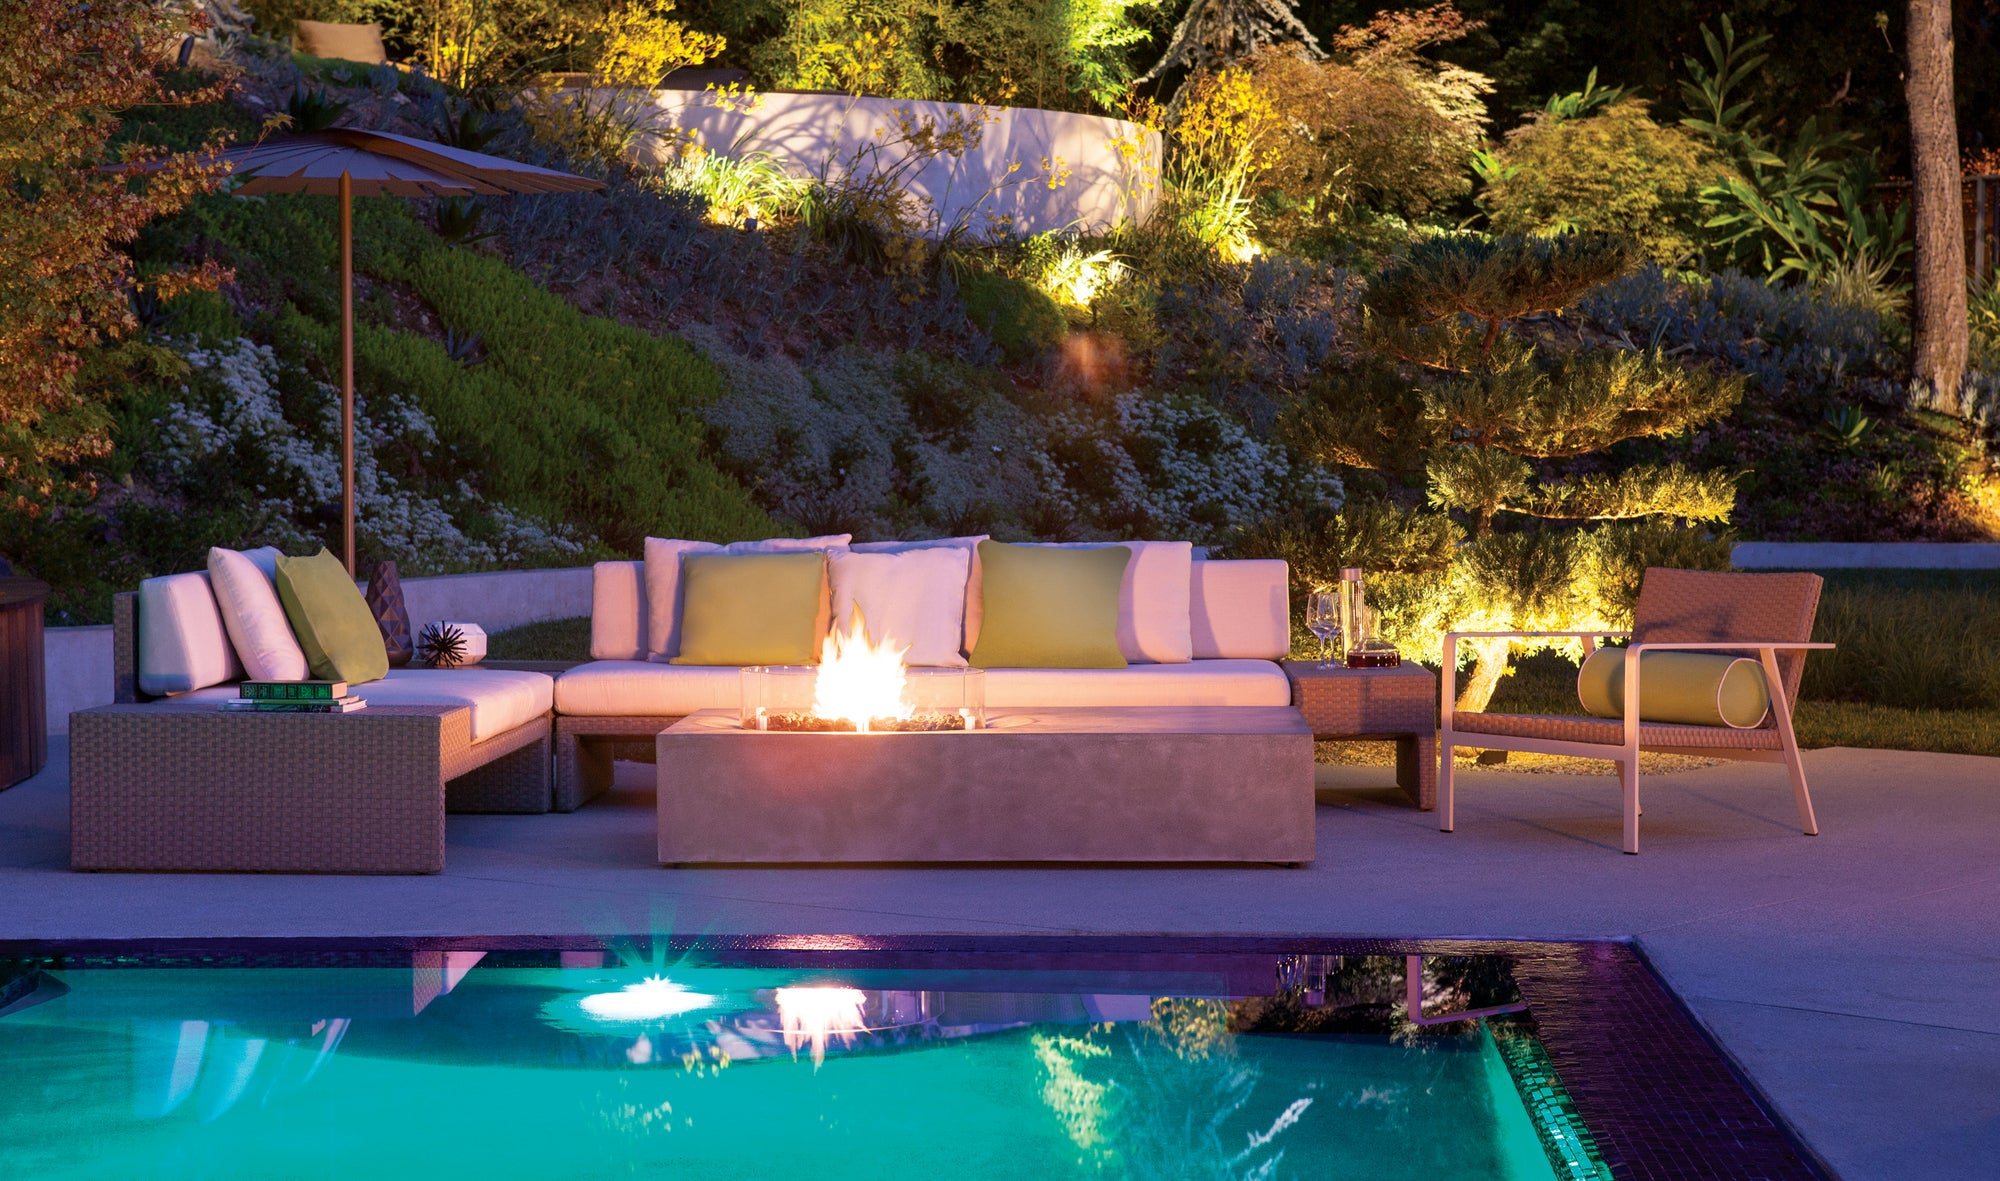 Top 5 Outdoor Fireplaces 2020